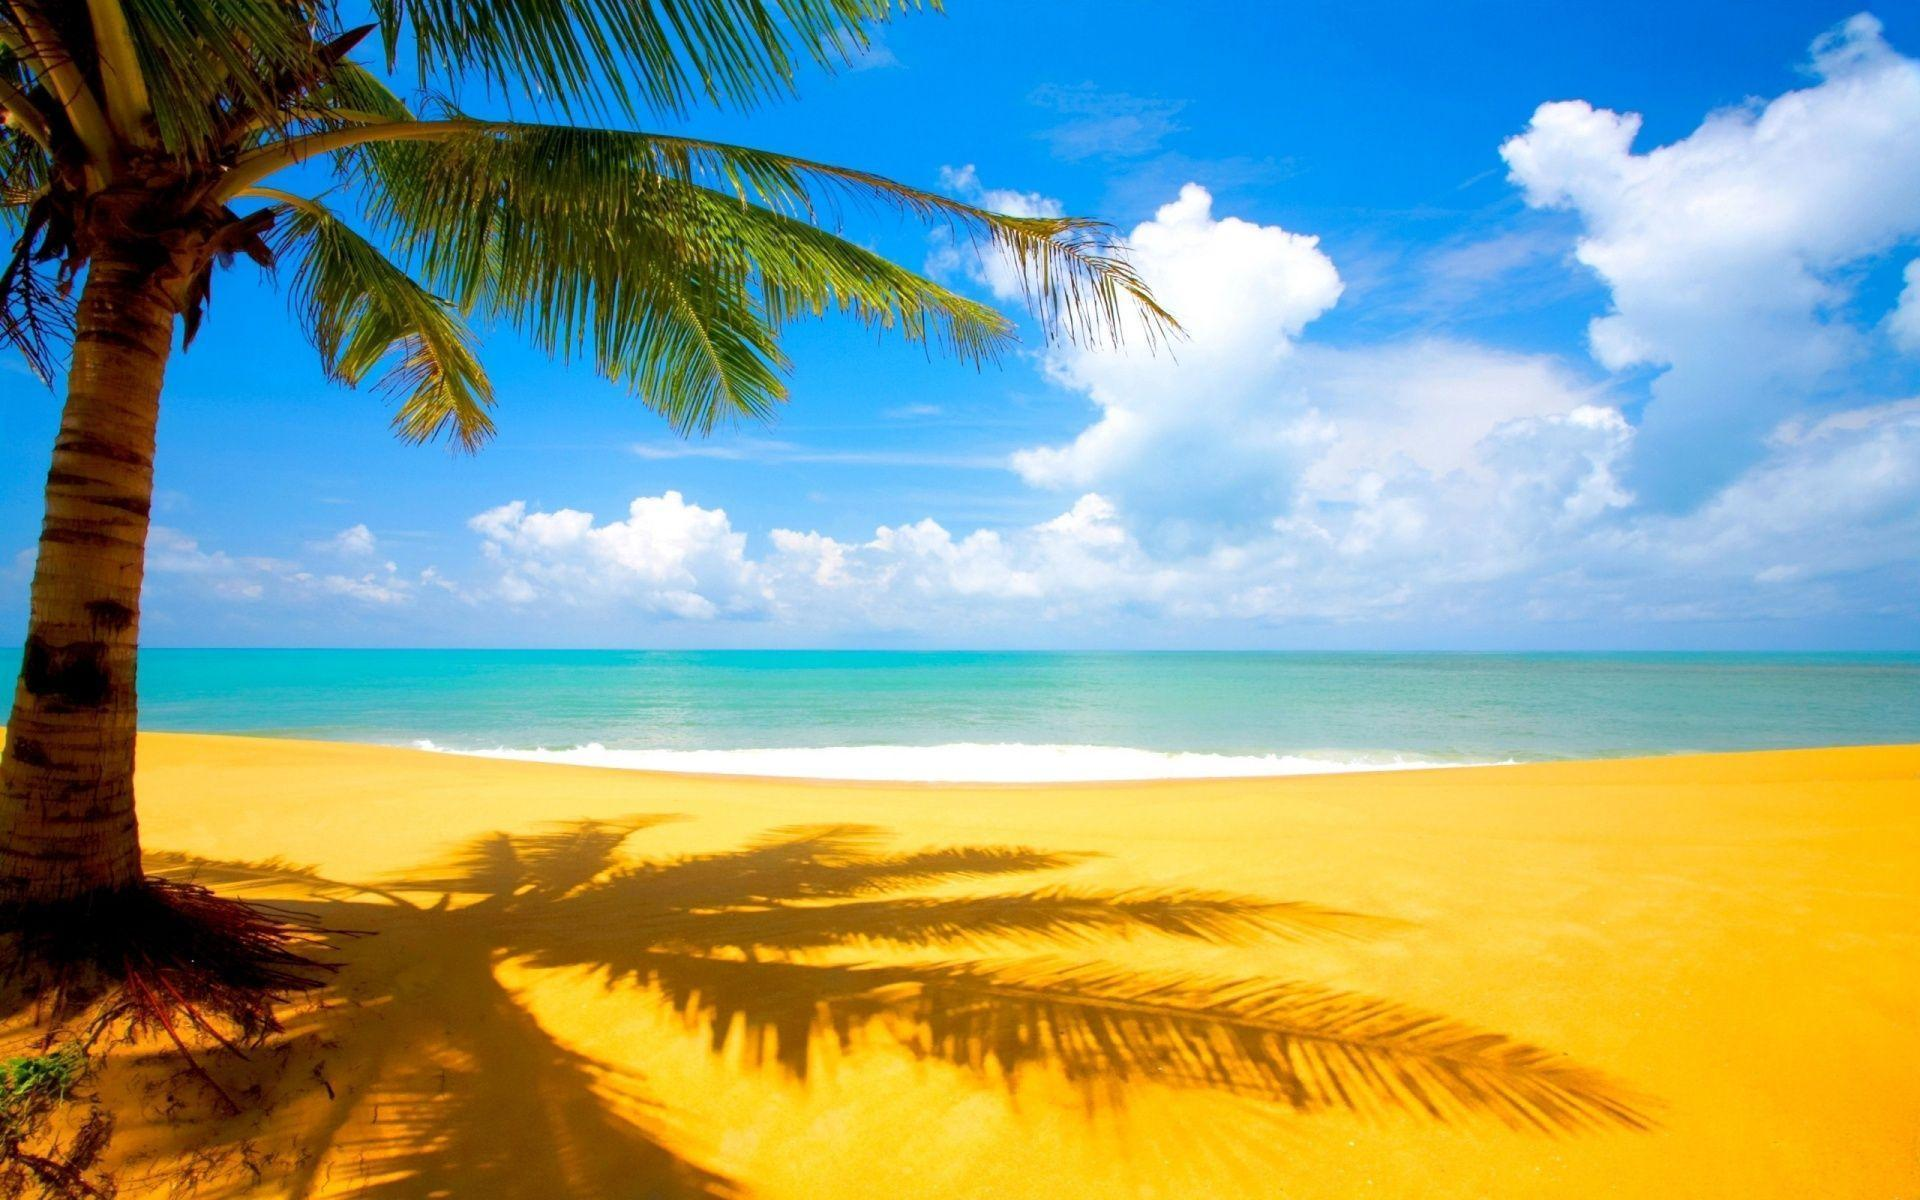 Hawaii Beach Wallpapers - HD Images New